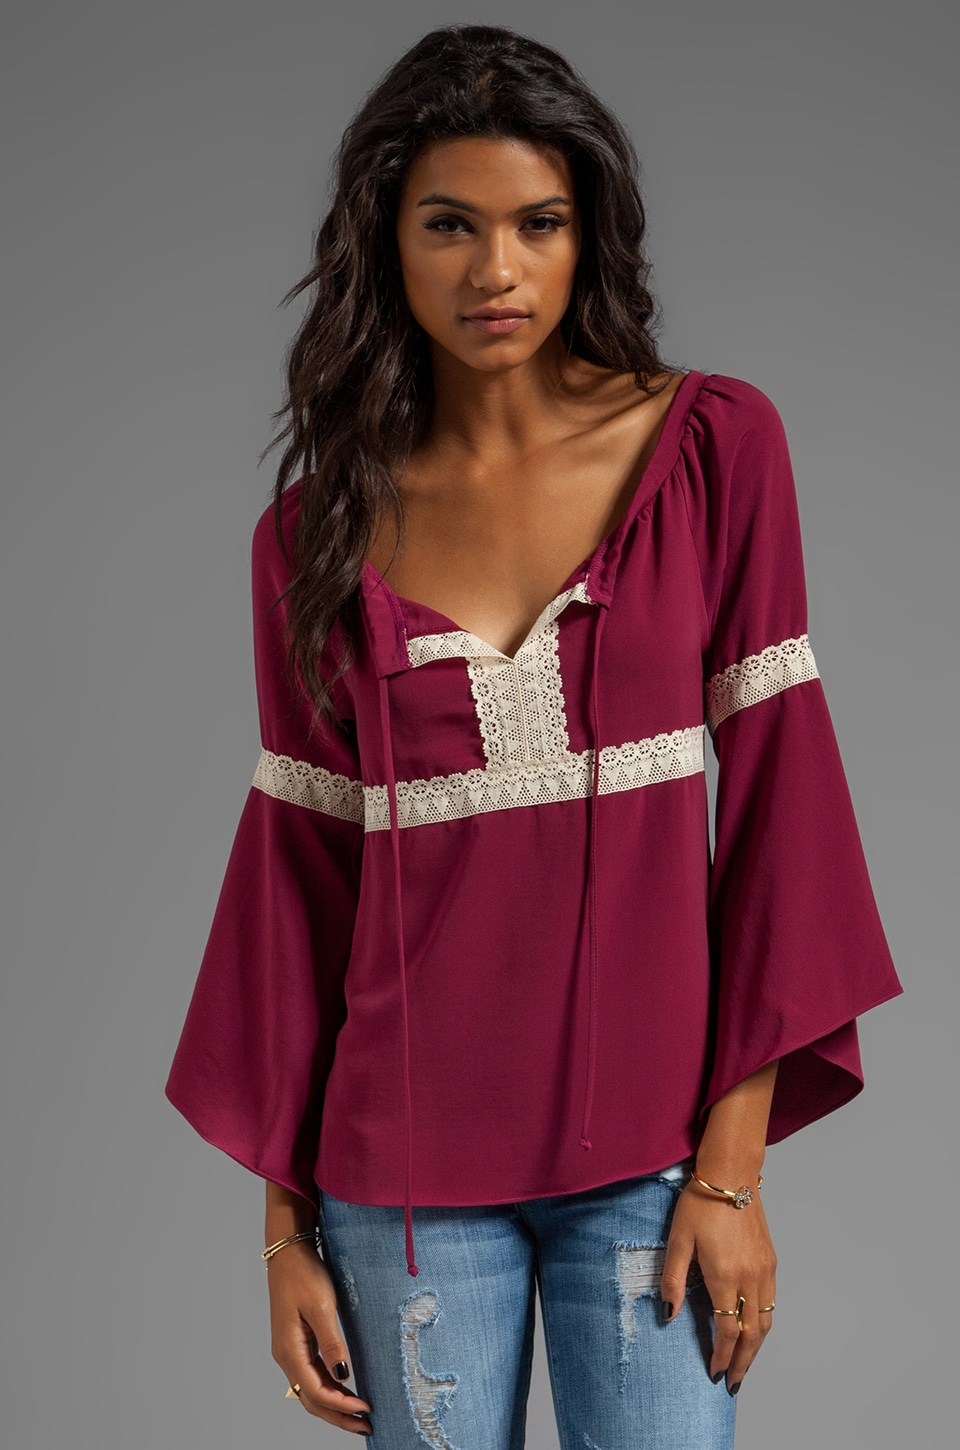 VAVA by Joy Han Angie Top in Burgundy